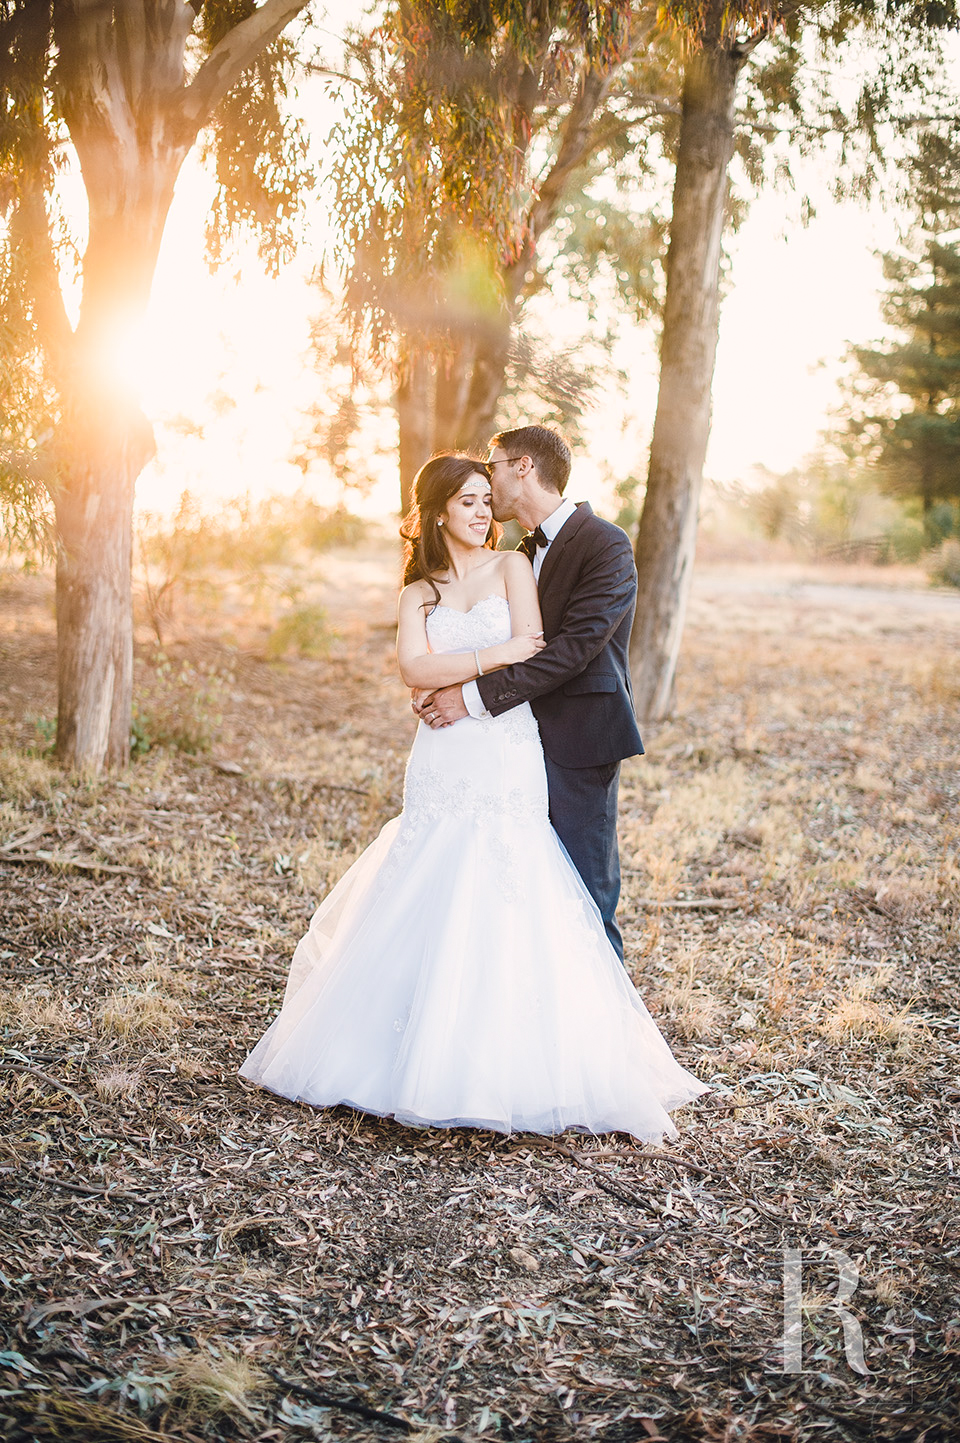 RYAN PARKER PHOTOGRAPHY_WEDDINGS_PRETORIA_ROSEMARY HILL_M&N -0436.jpg